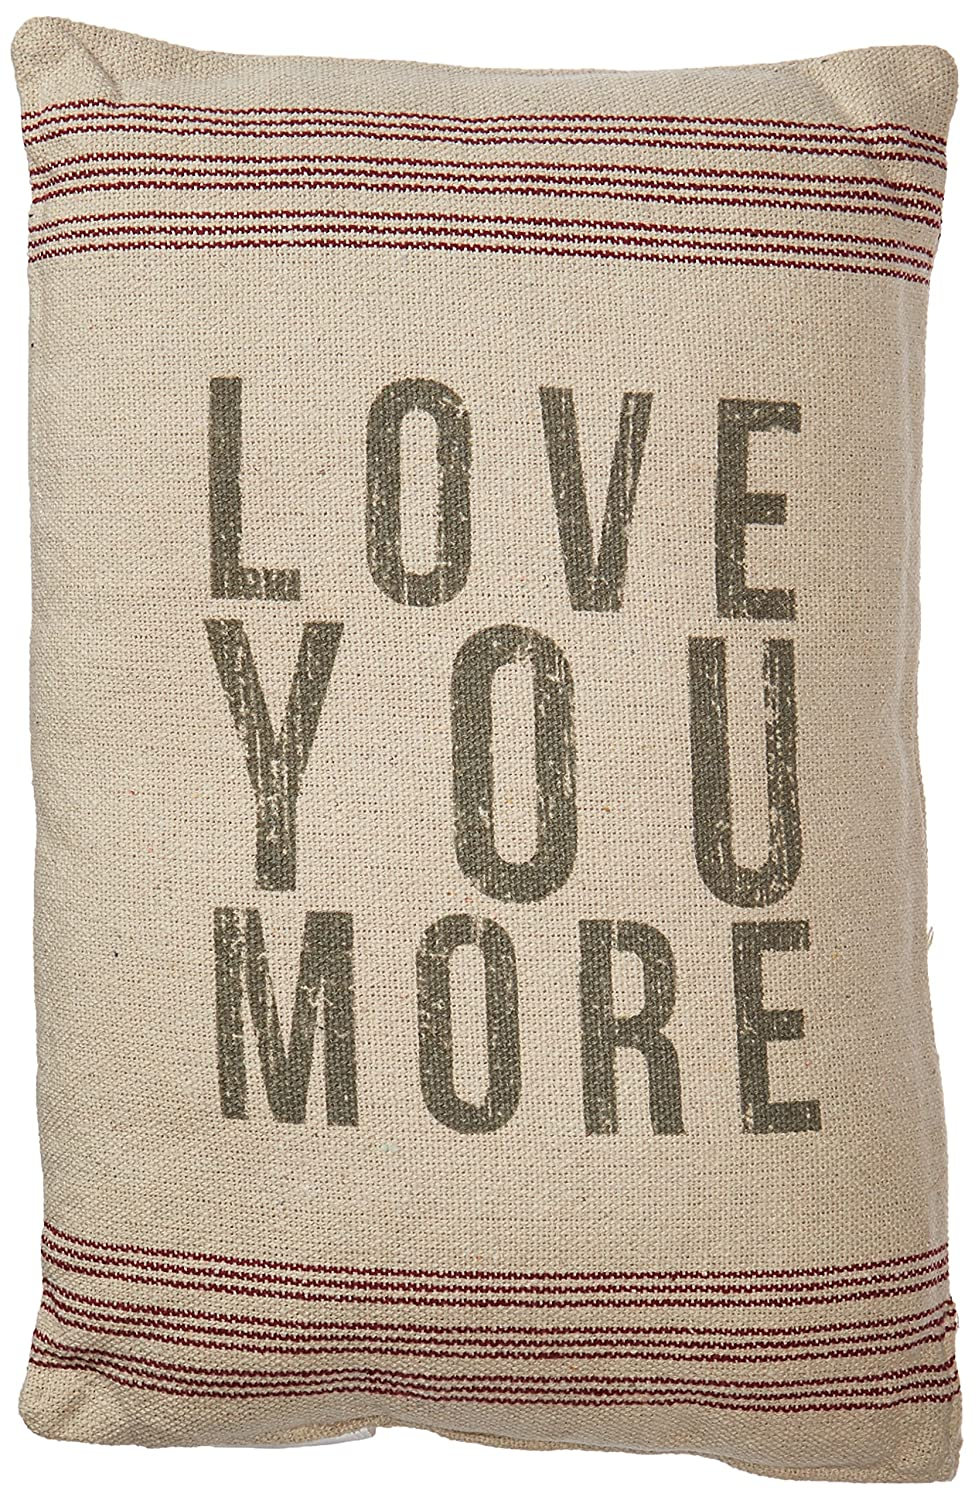 Primitives by Kathy 18293 Striped Pillow, 10 x 15.5, Love You More 10 x 15.5